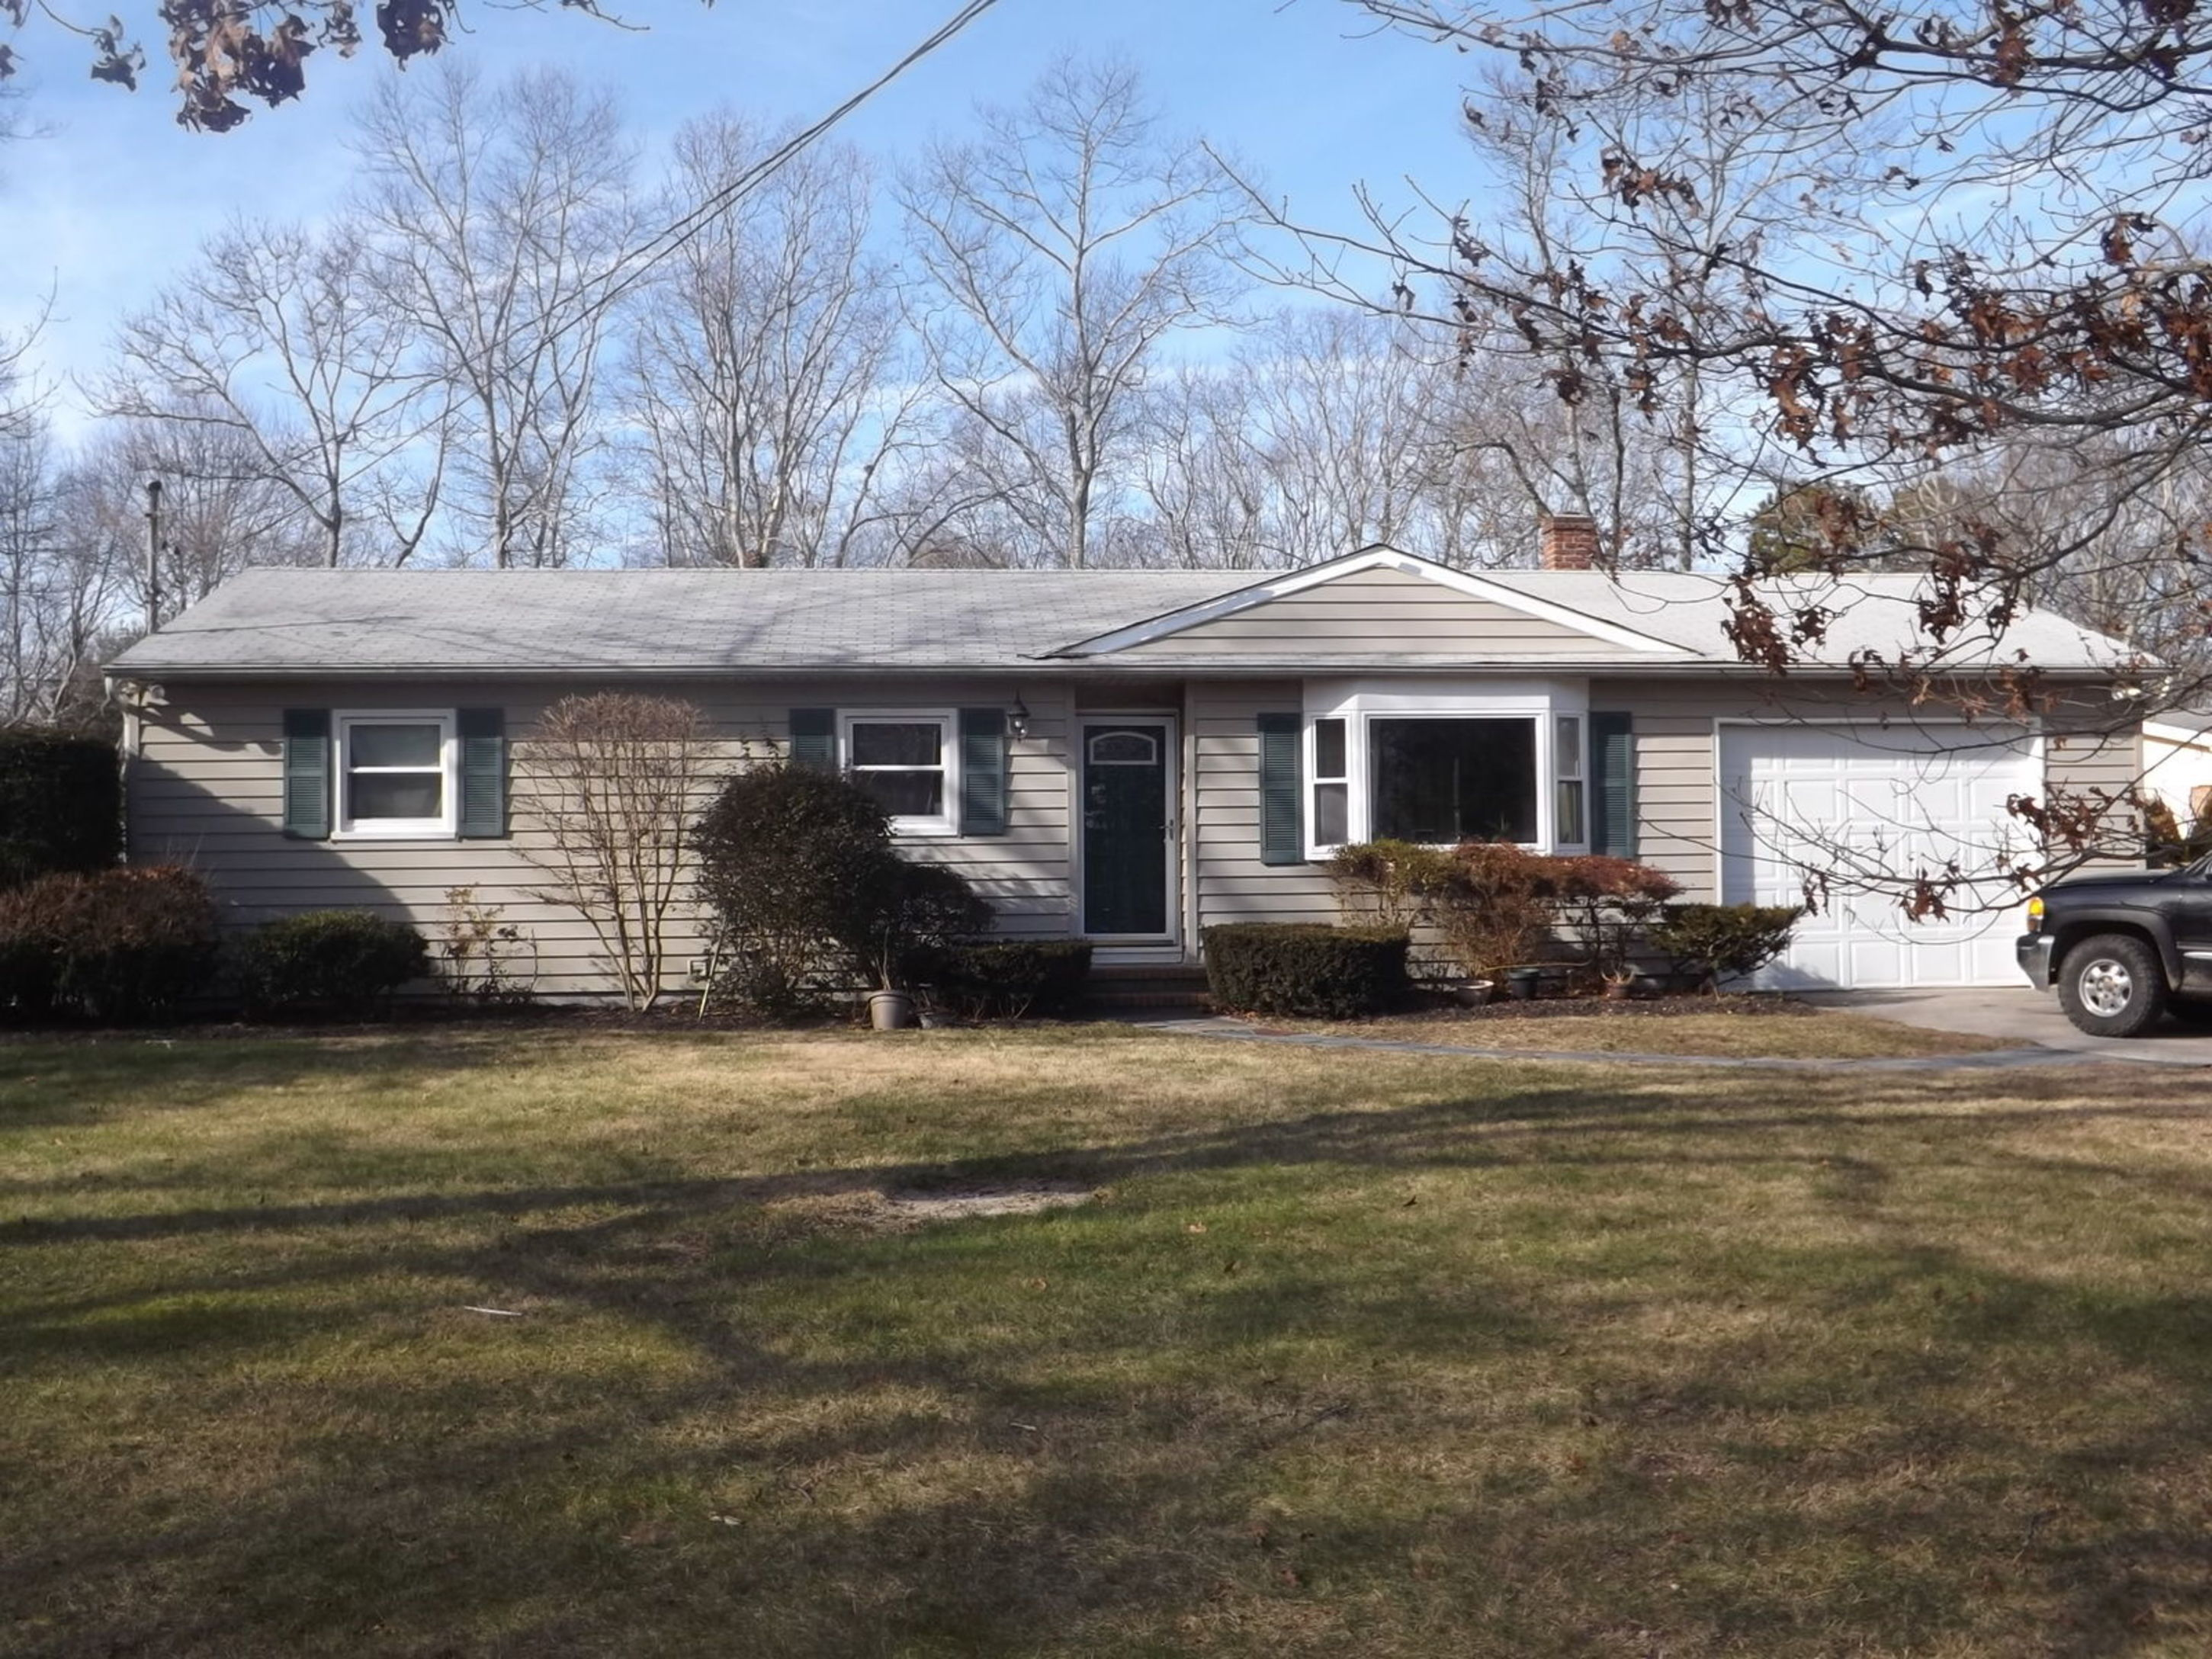 56 Homewood Dr - Hampton Bays, New York